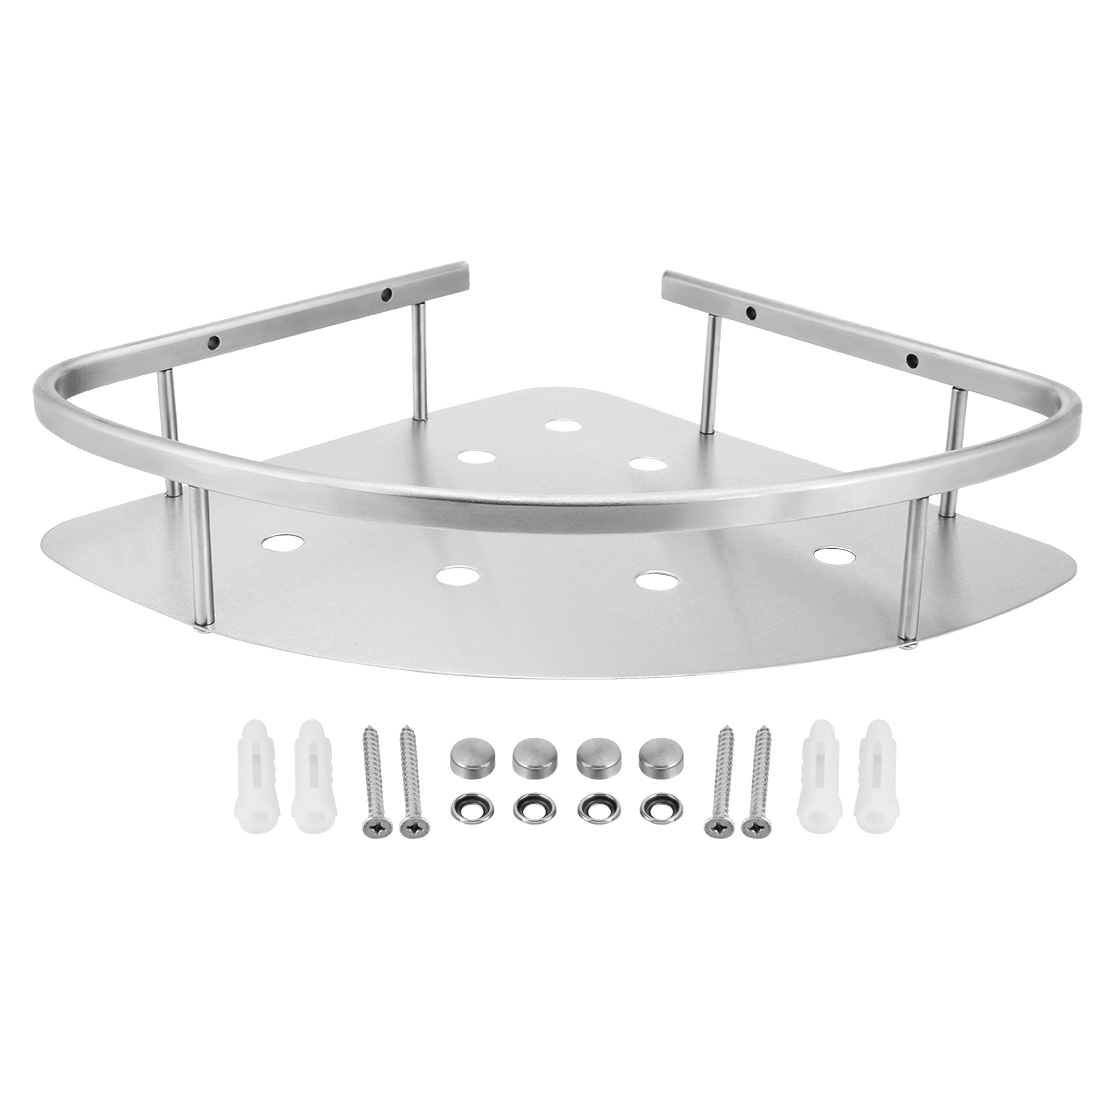 11.4-inch x 8.8-inch 304 Stainless Steel Wall Mount Bathroom Shower Corner Caddy Basket Brushed Finish